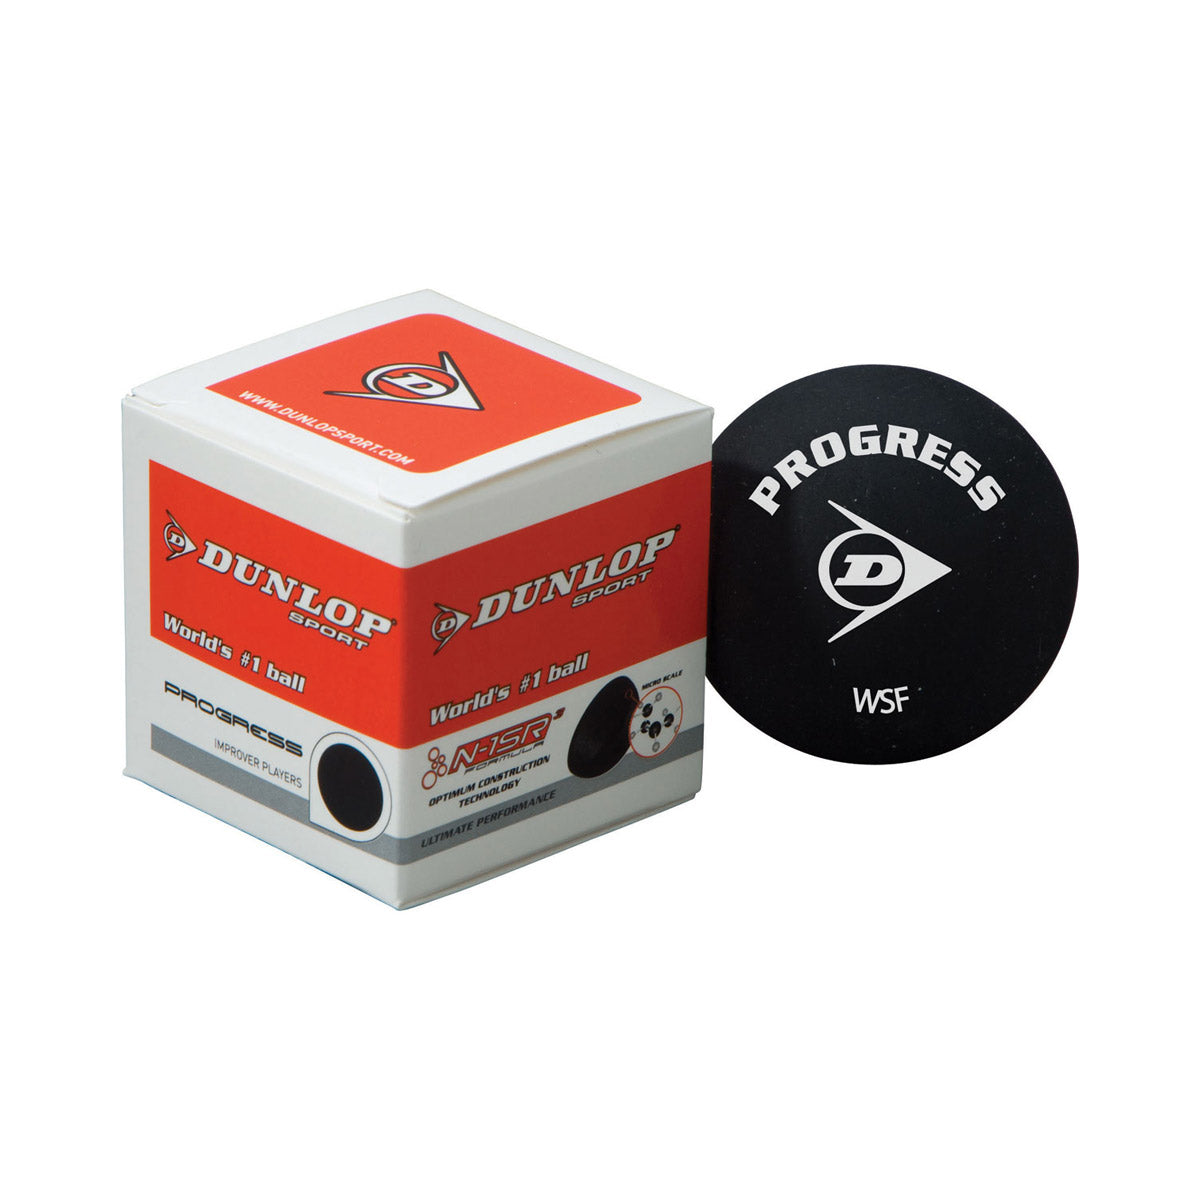 Dunlop Progress Squash Ball single